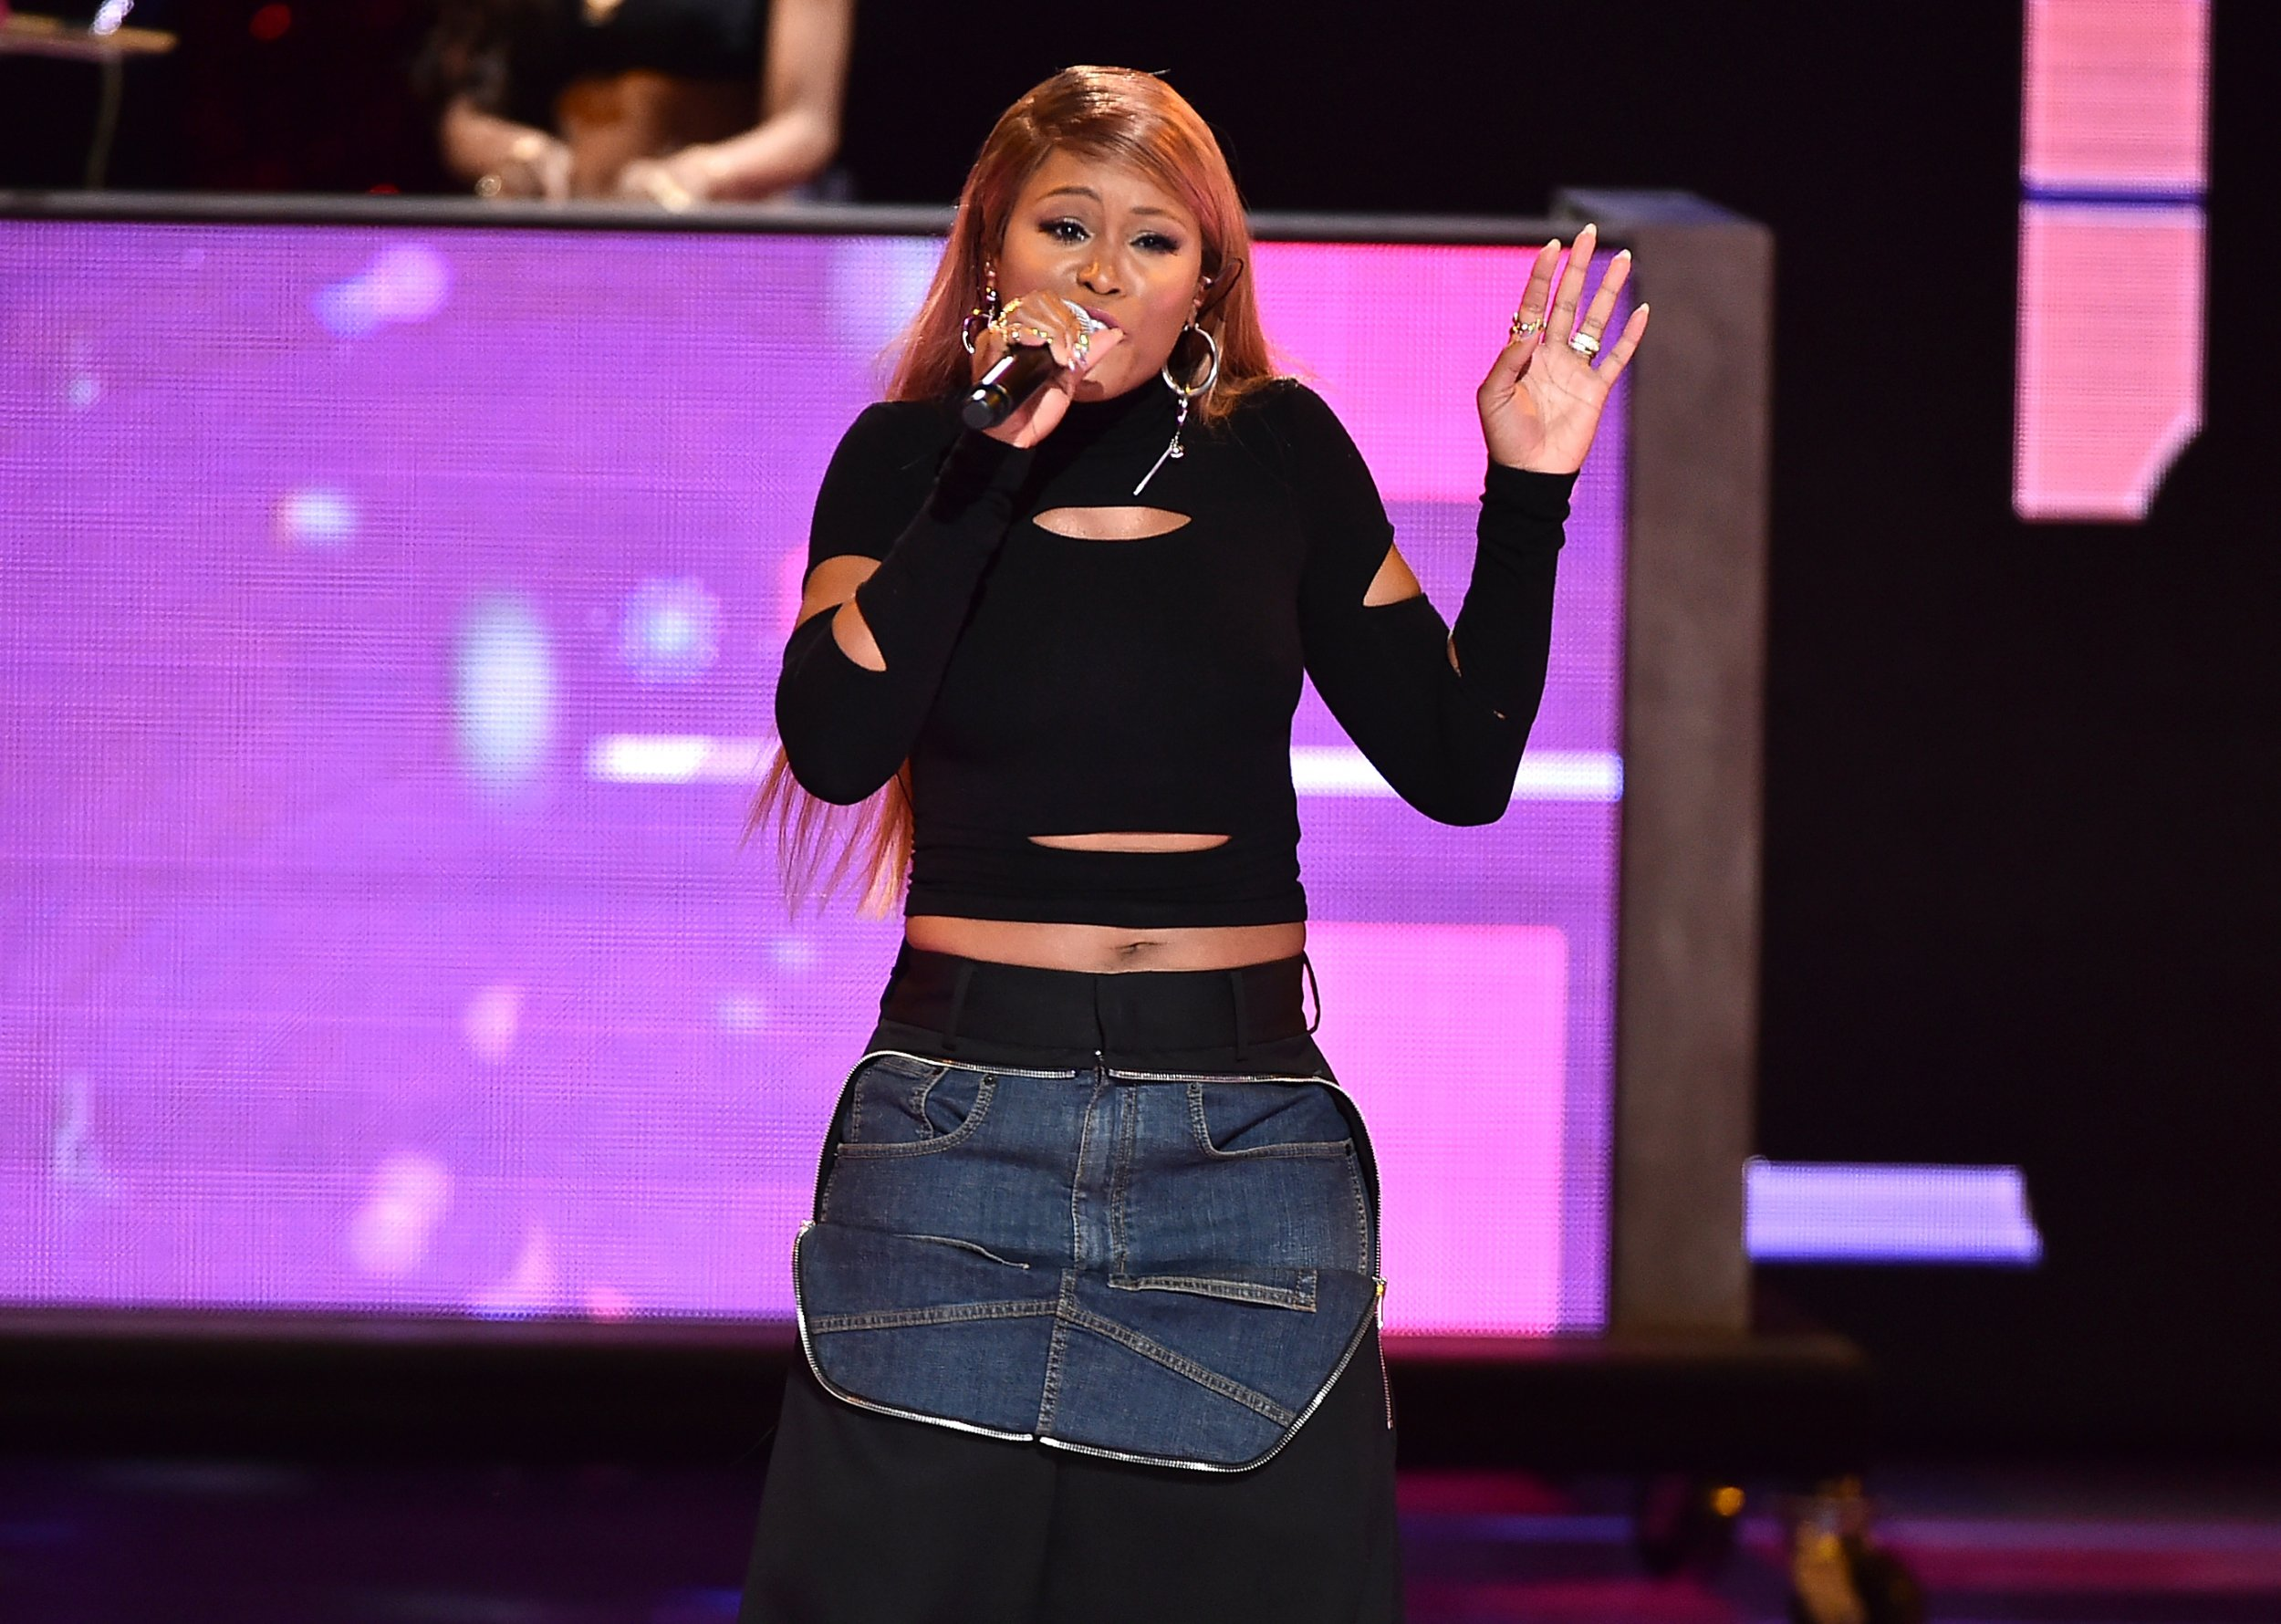 misogyny hip hop artists Since the 1980s, hip-hop artists have been accused of objectifying, demeaning,  and promoting violence against women, but have faced little to.